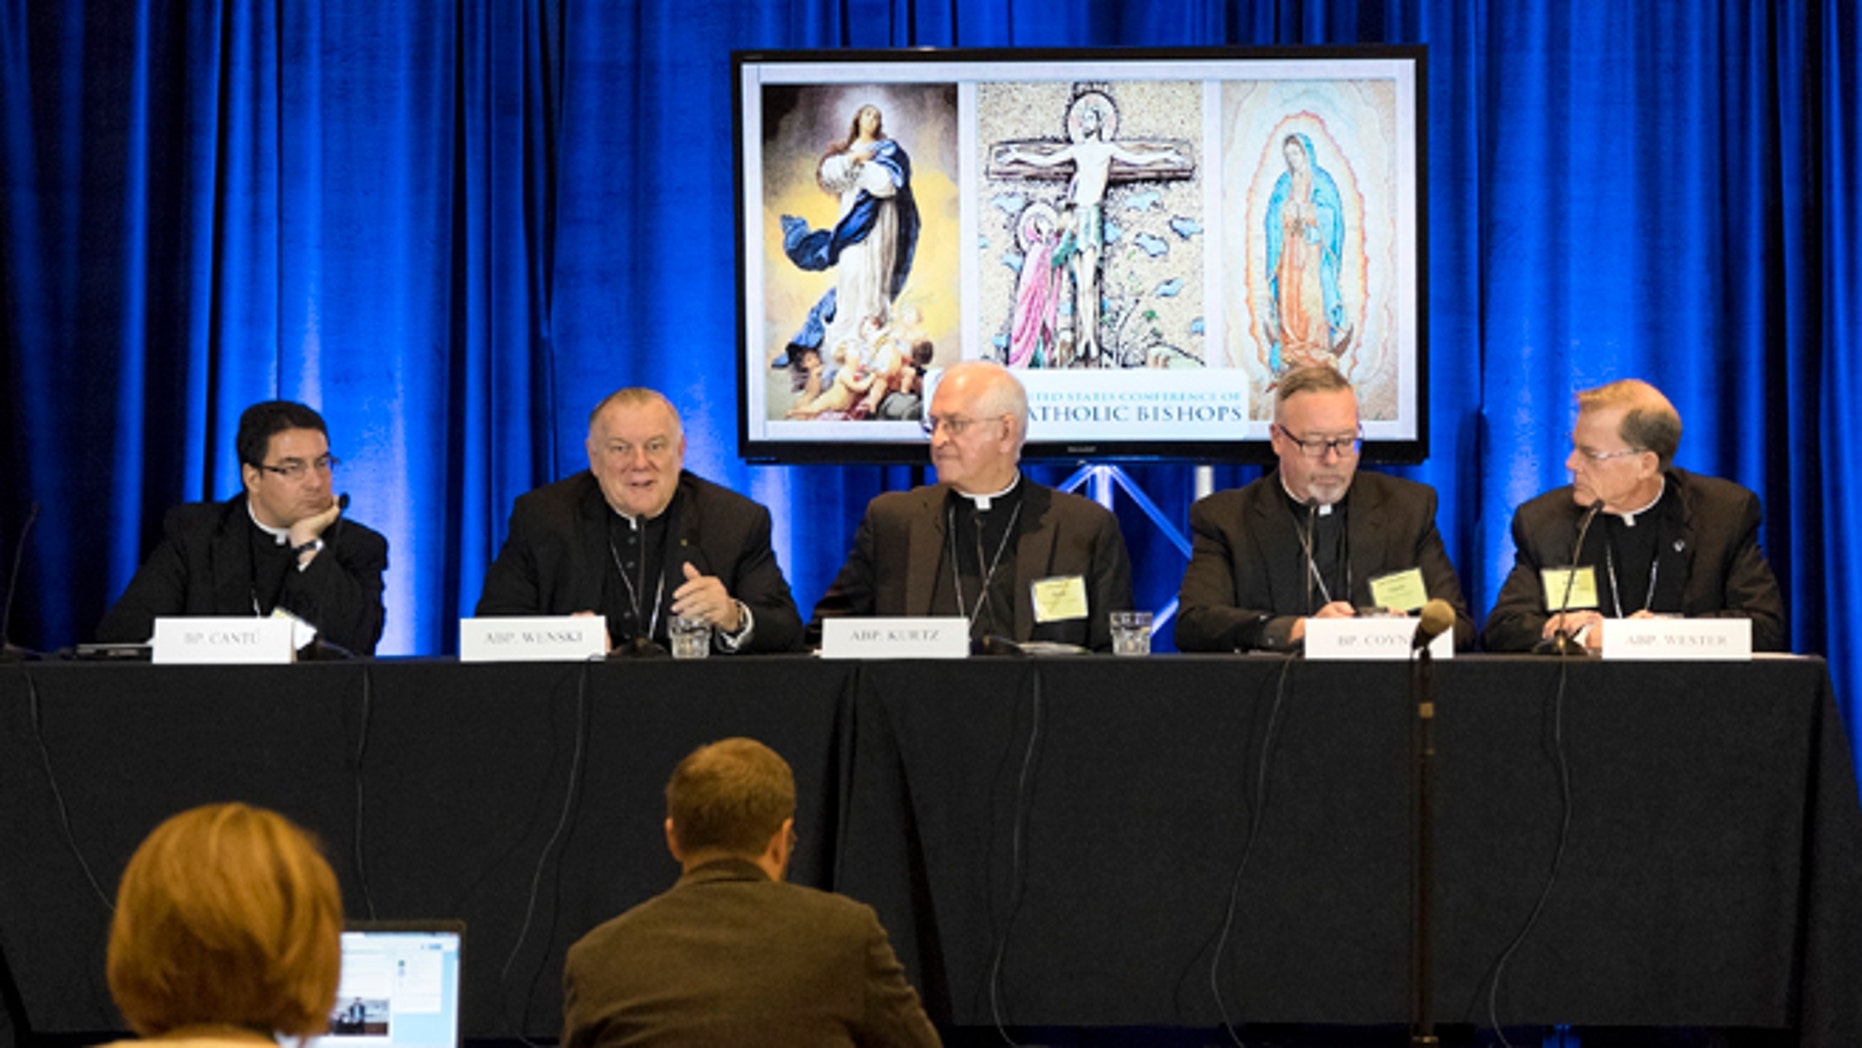 Bishop Oscar Cantú, left, of Las Cruses, Archbishop Thomas Wenski, of Miami, Archbishop Joseph Kurtz, of Louisville and president of the U.S. Conference of Catholic Bishops, Bishop Christopher Coyne, of Burlington and Archbishop John Wester, of Santa Fe, participate in a news conference during the U.S. Conference of Catholic Bishops' Spring General Assembly in St. Louis Wednesday, June 10, 2015.  Roman Catholic bishops are condemning racism in the U.S. in light of national tensions over police treatment of African-Americans. (AP Photo/Sid Hastings)